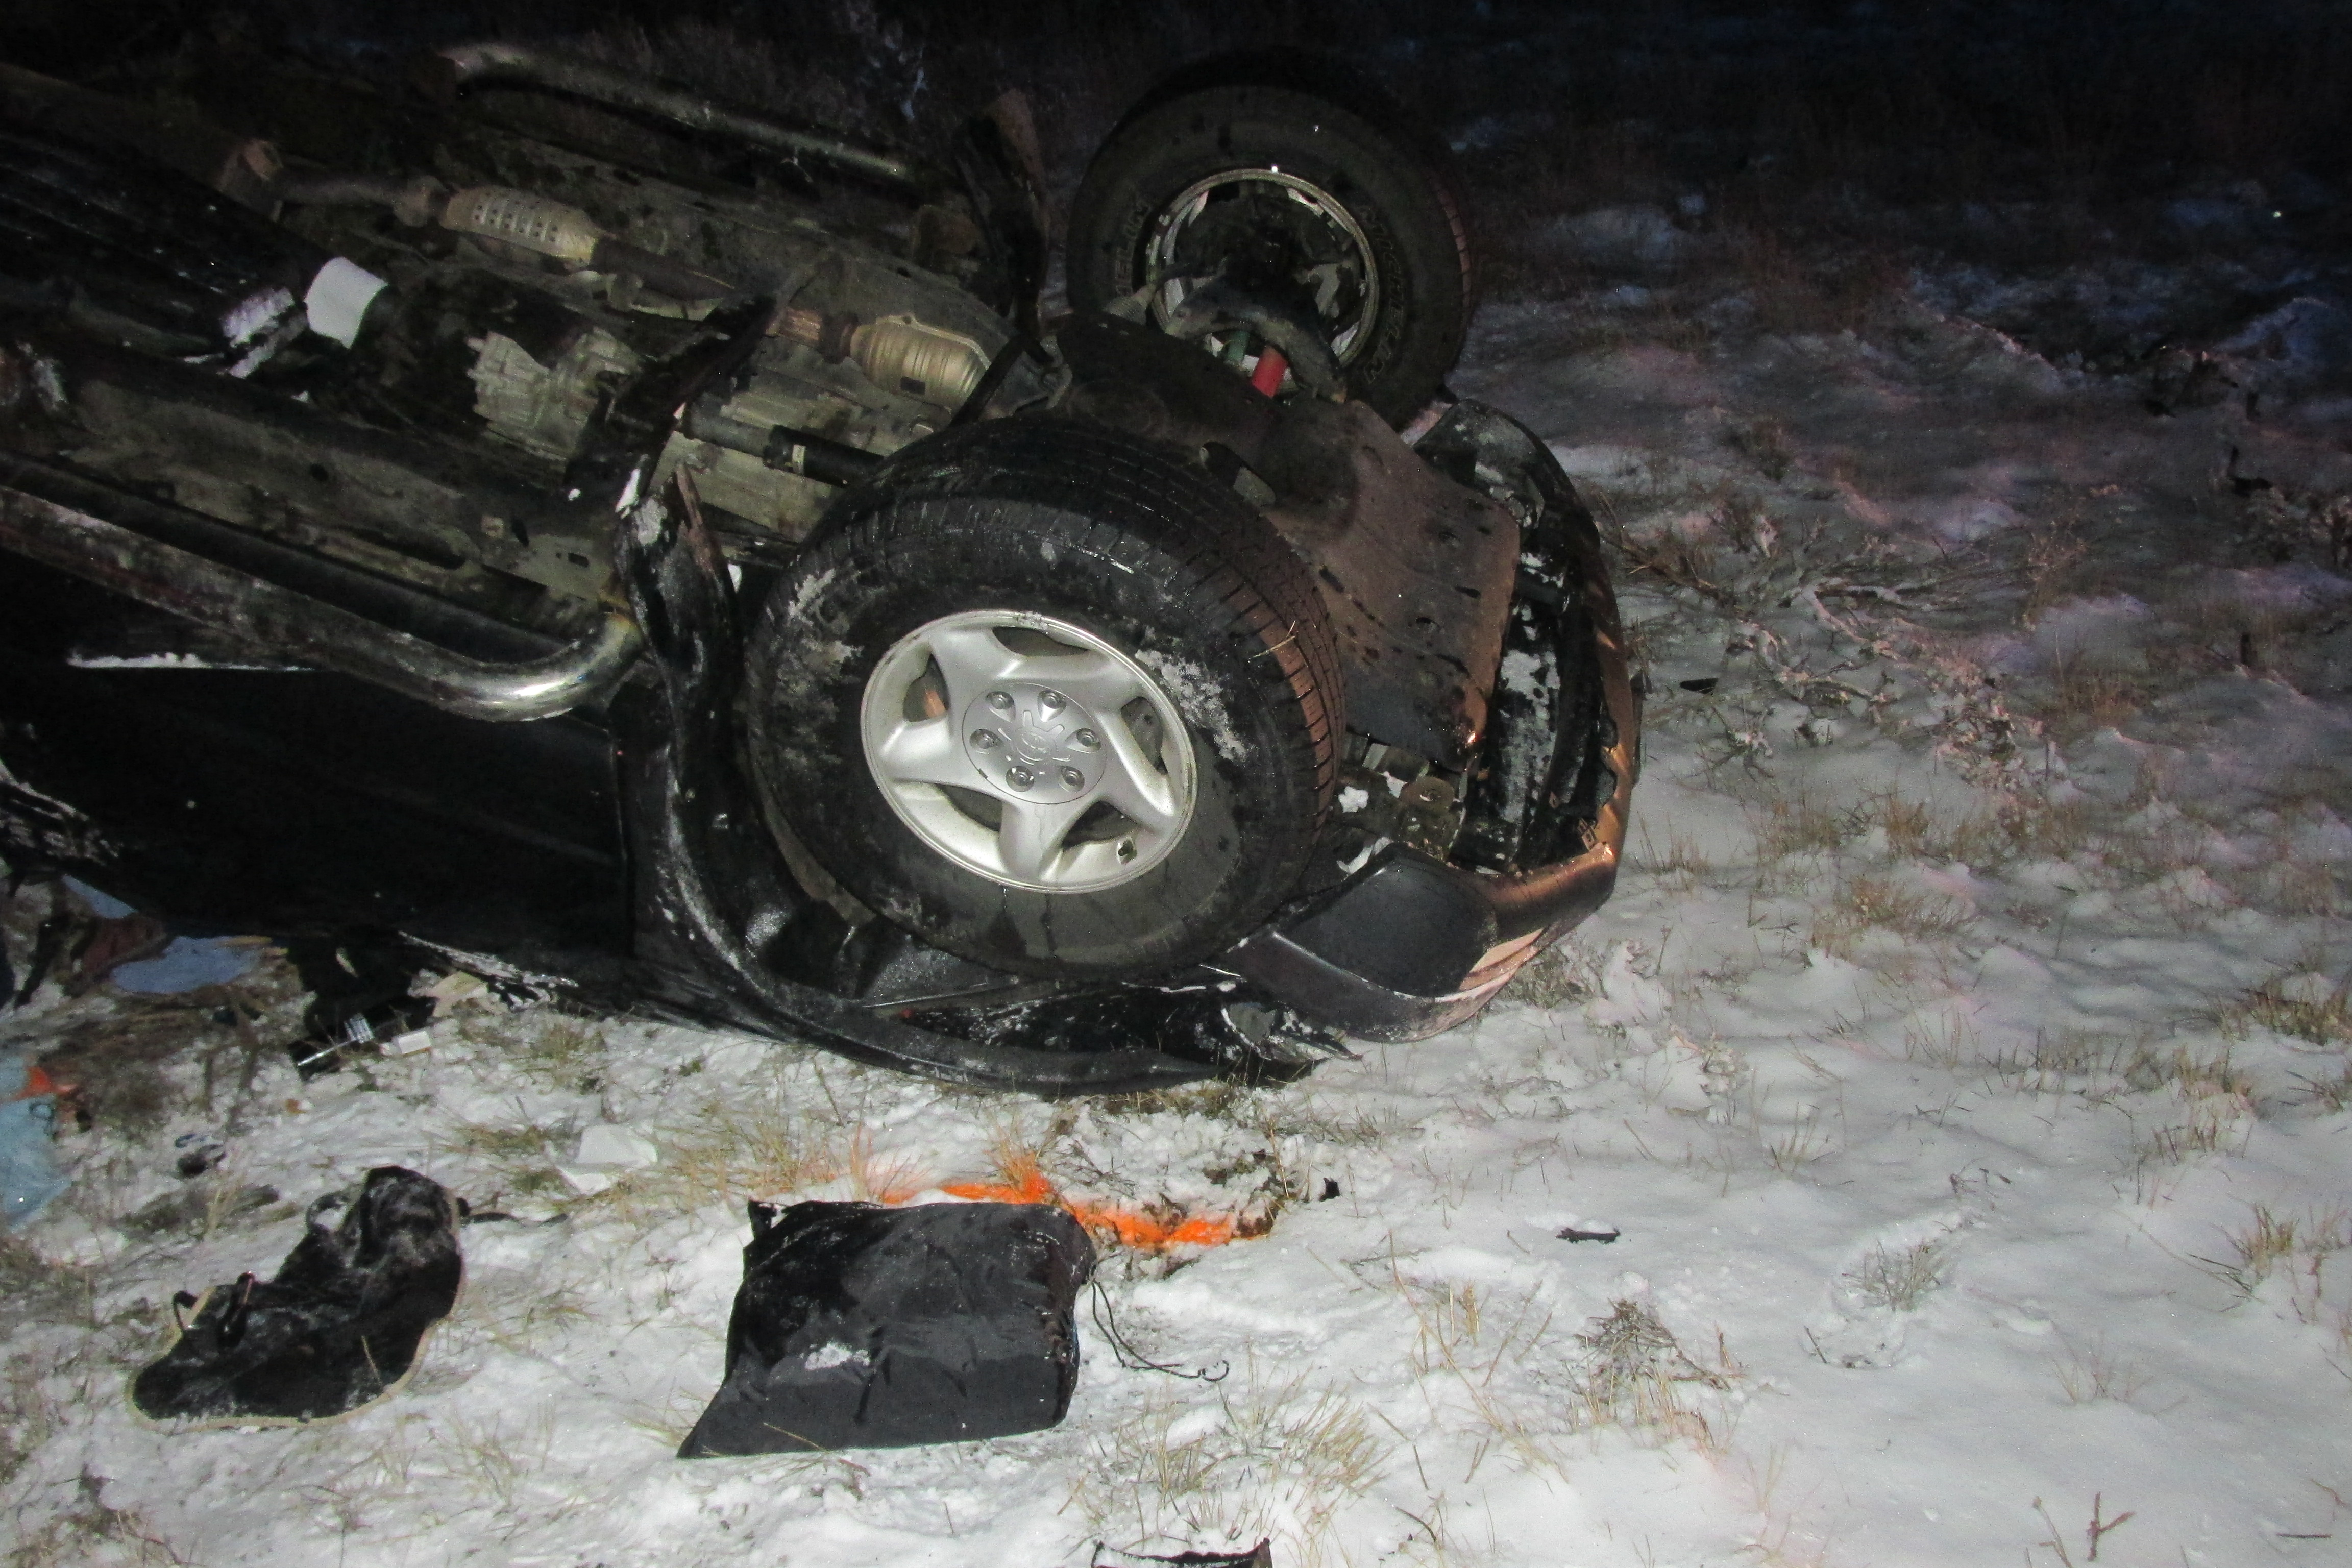 A man died and a woman was sent to the hospital after icy conditions led to a rollover accident at milepost 66 Interstate 15 in Cedar City, Utah, Nov. 17, 2015 | Photo courtesy of the Utah Highway Patrol, St. George News